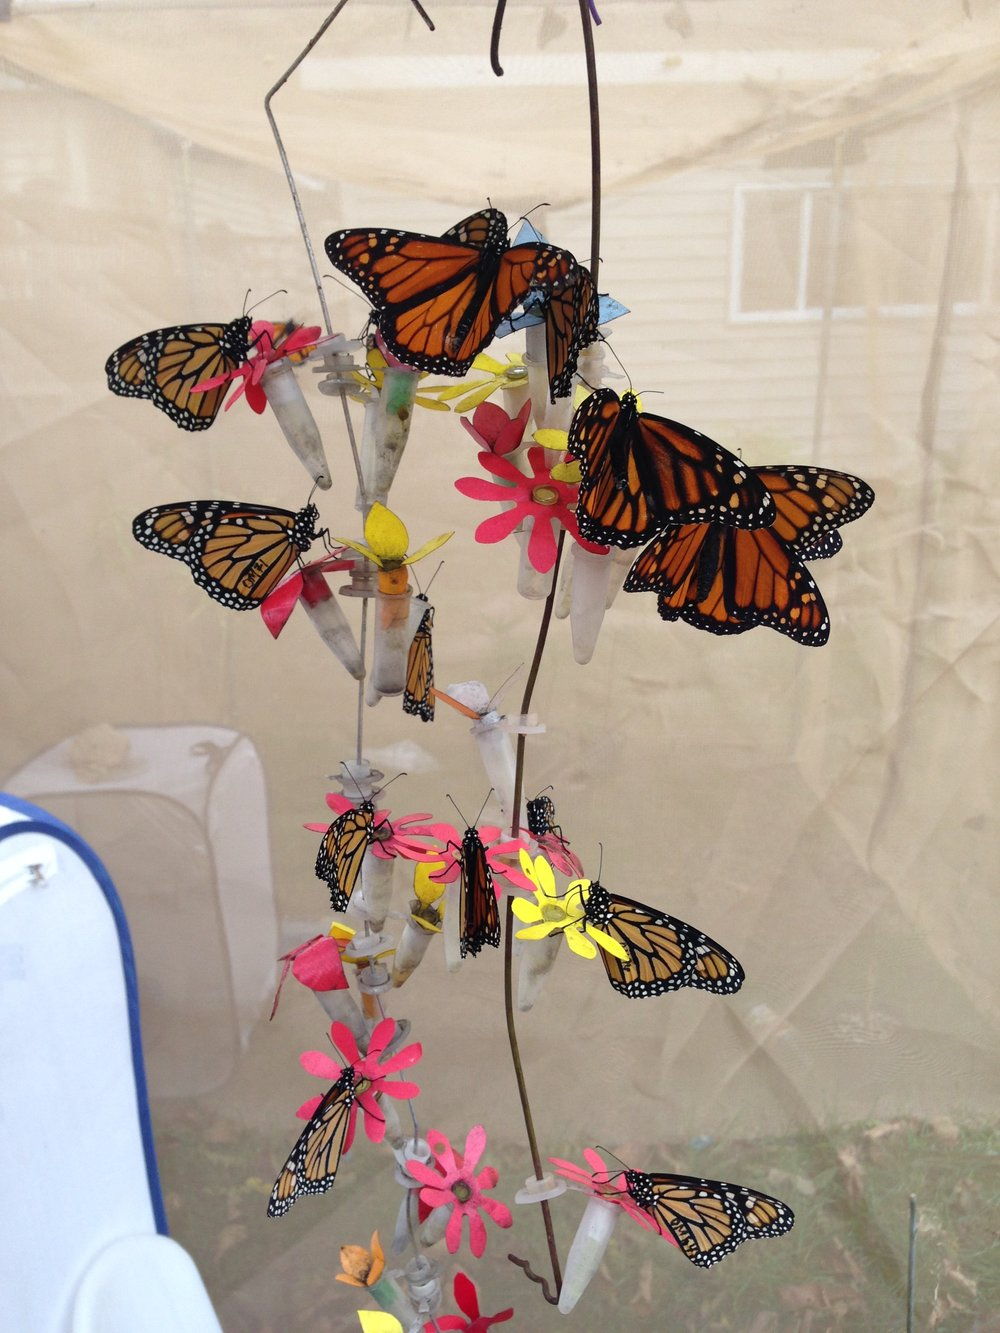 Monarch butterflies feeding from our fake flower set up.